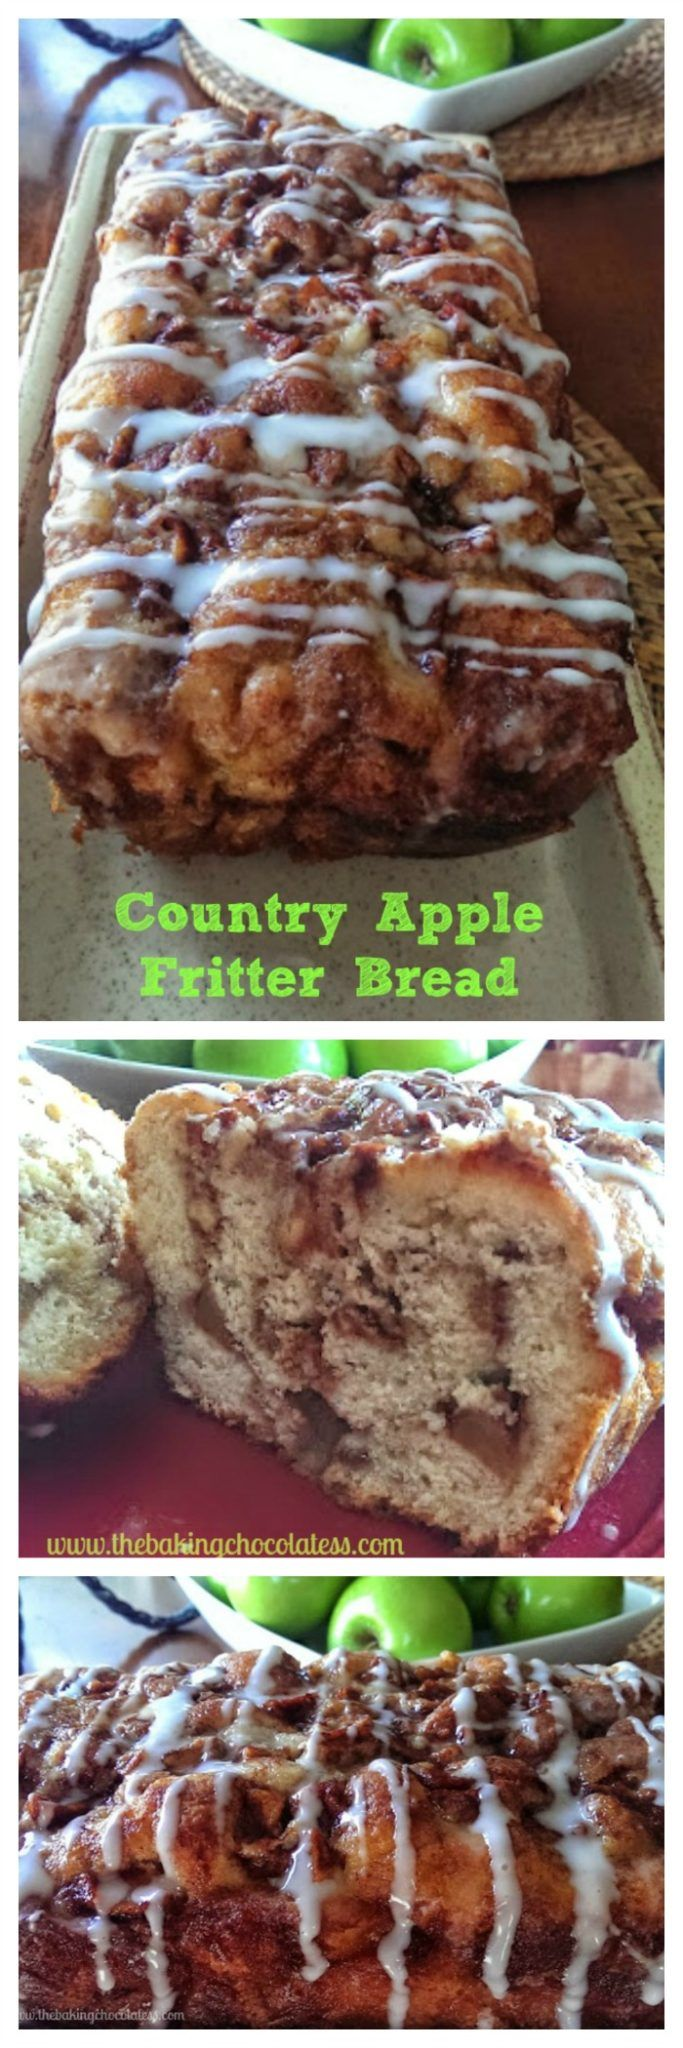 Awesome+Country+Apple+Fritter+Bread+Recipe+via+@https://www.pinterest.com/BaknChocolaTess/